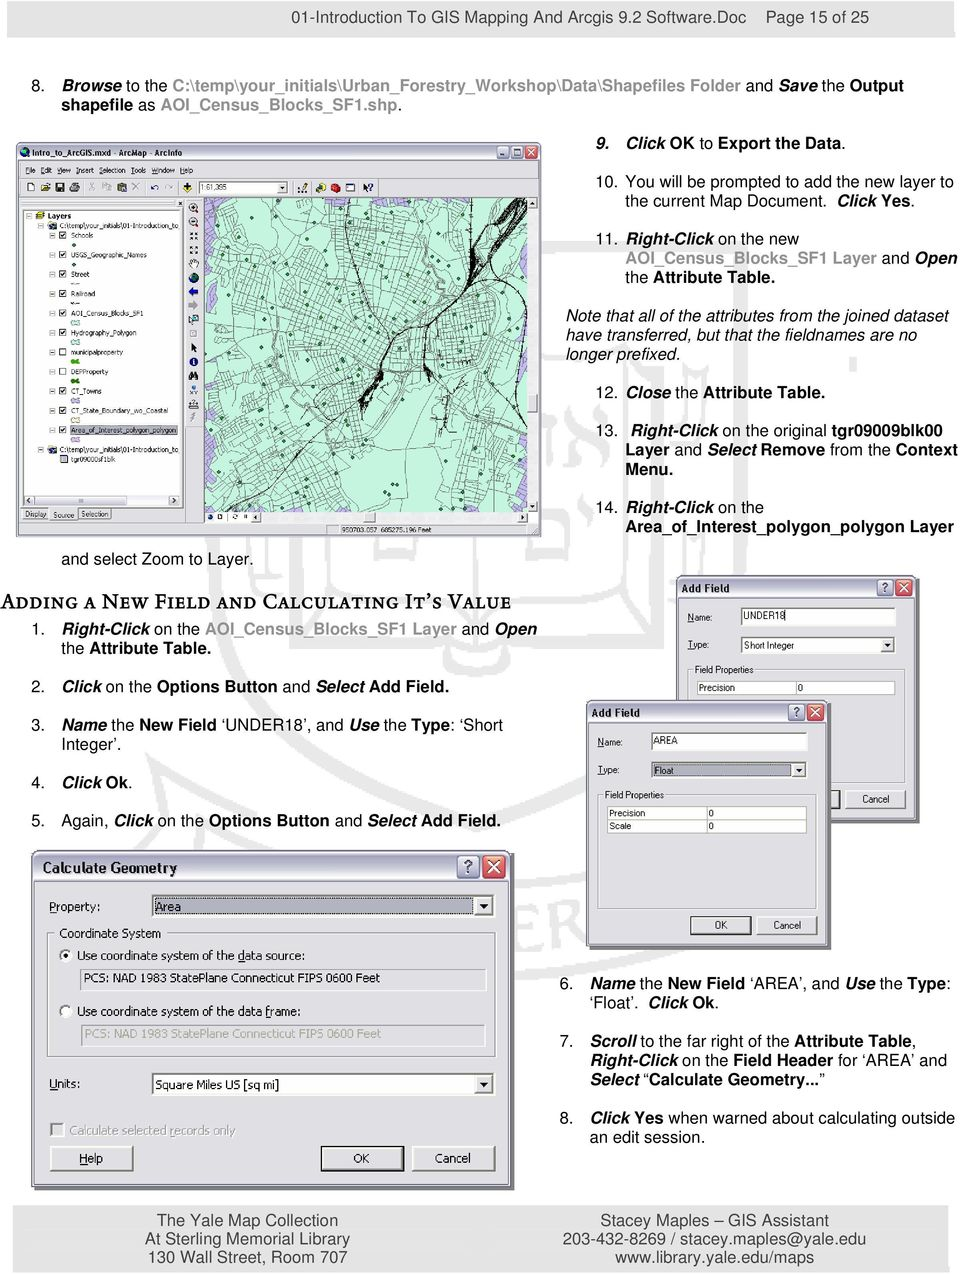 Introduction to GIS Mapping and ESRI s ArcGIS Software - PDF